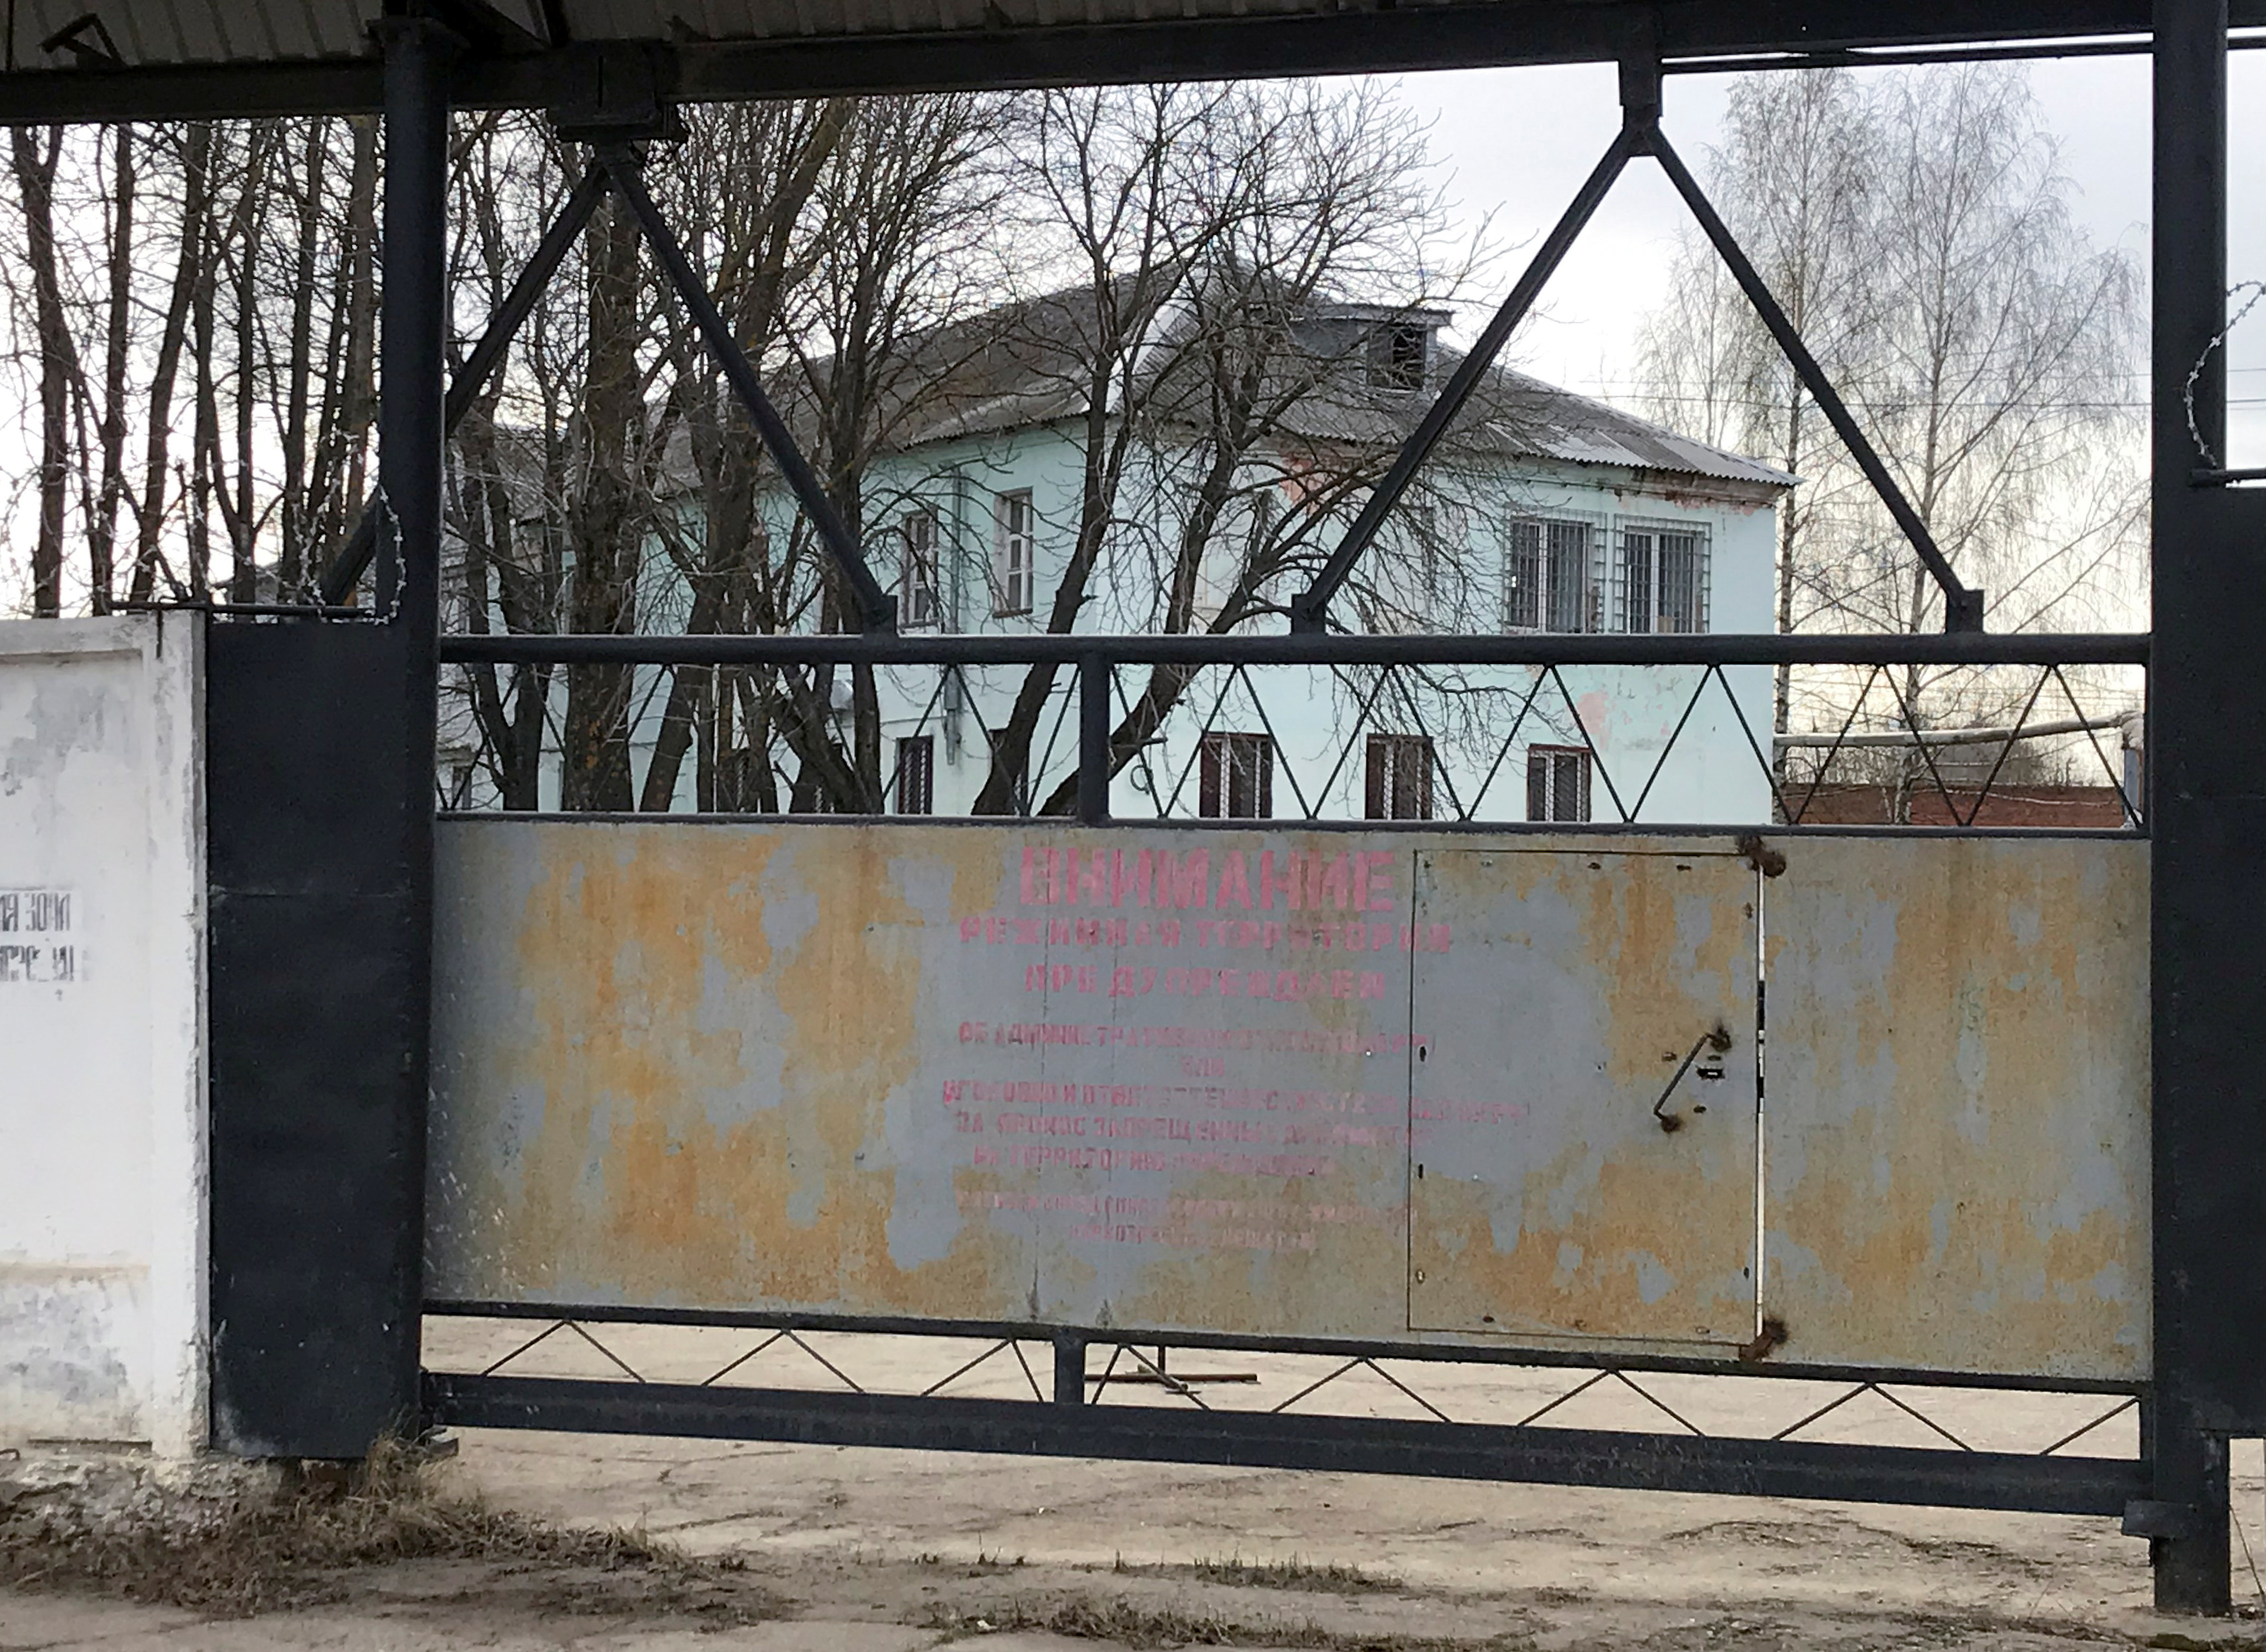 A view shows an entrance to the IK-3 penal colony, which houses a hospital where jailed Kremlin critic Alexei Navalny was reportedly transferred, in Vladimir, Russia April 19, 2021. Alexei Liptser, a lawyer for Navalny, said the hunger-striking opposition politician was earlier transferred to a prison hospital at a penal colony in the town of Vladimir following a decision by authorities. REUTERS/Alexander Reshetnikov